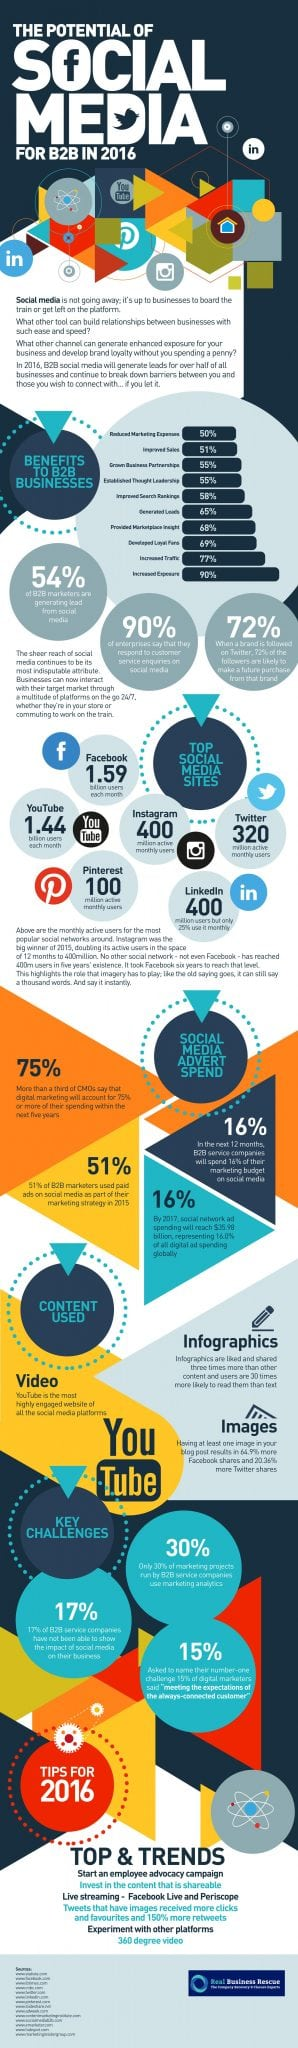 Photo of The Potential of Social Media for B2B in 2016 [INFOGRAPHIC]